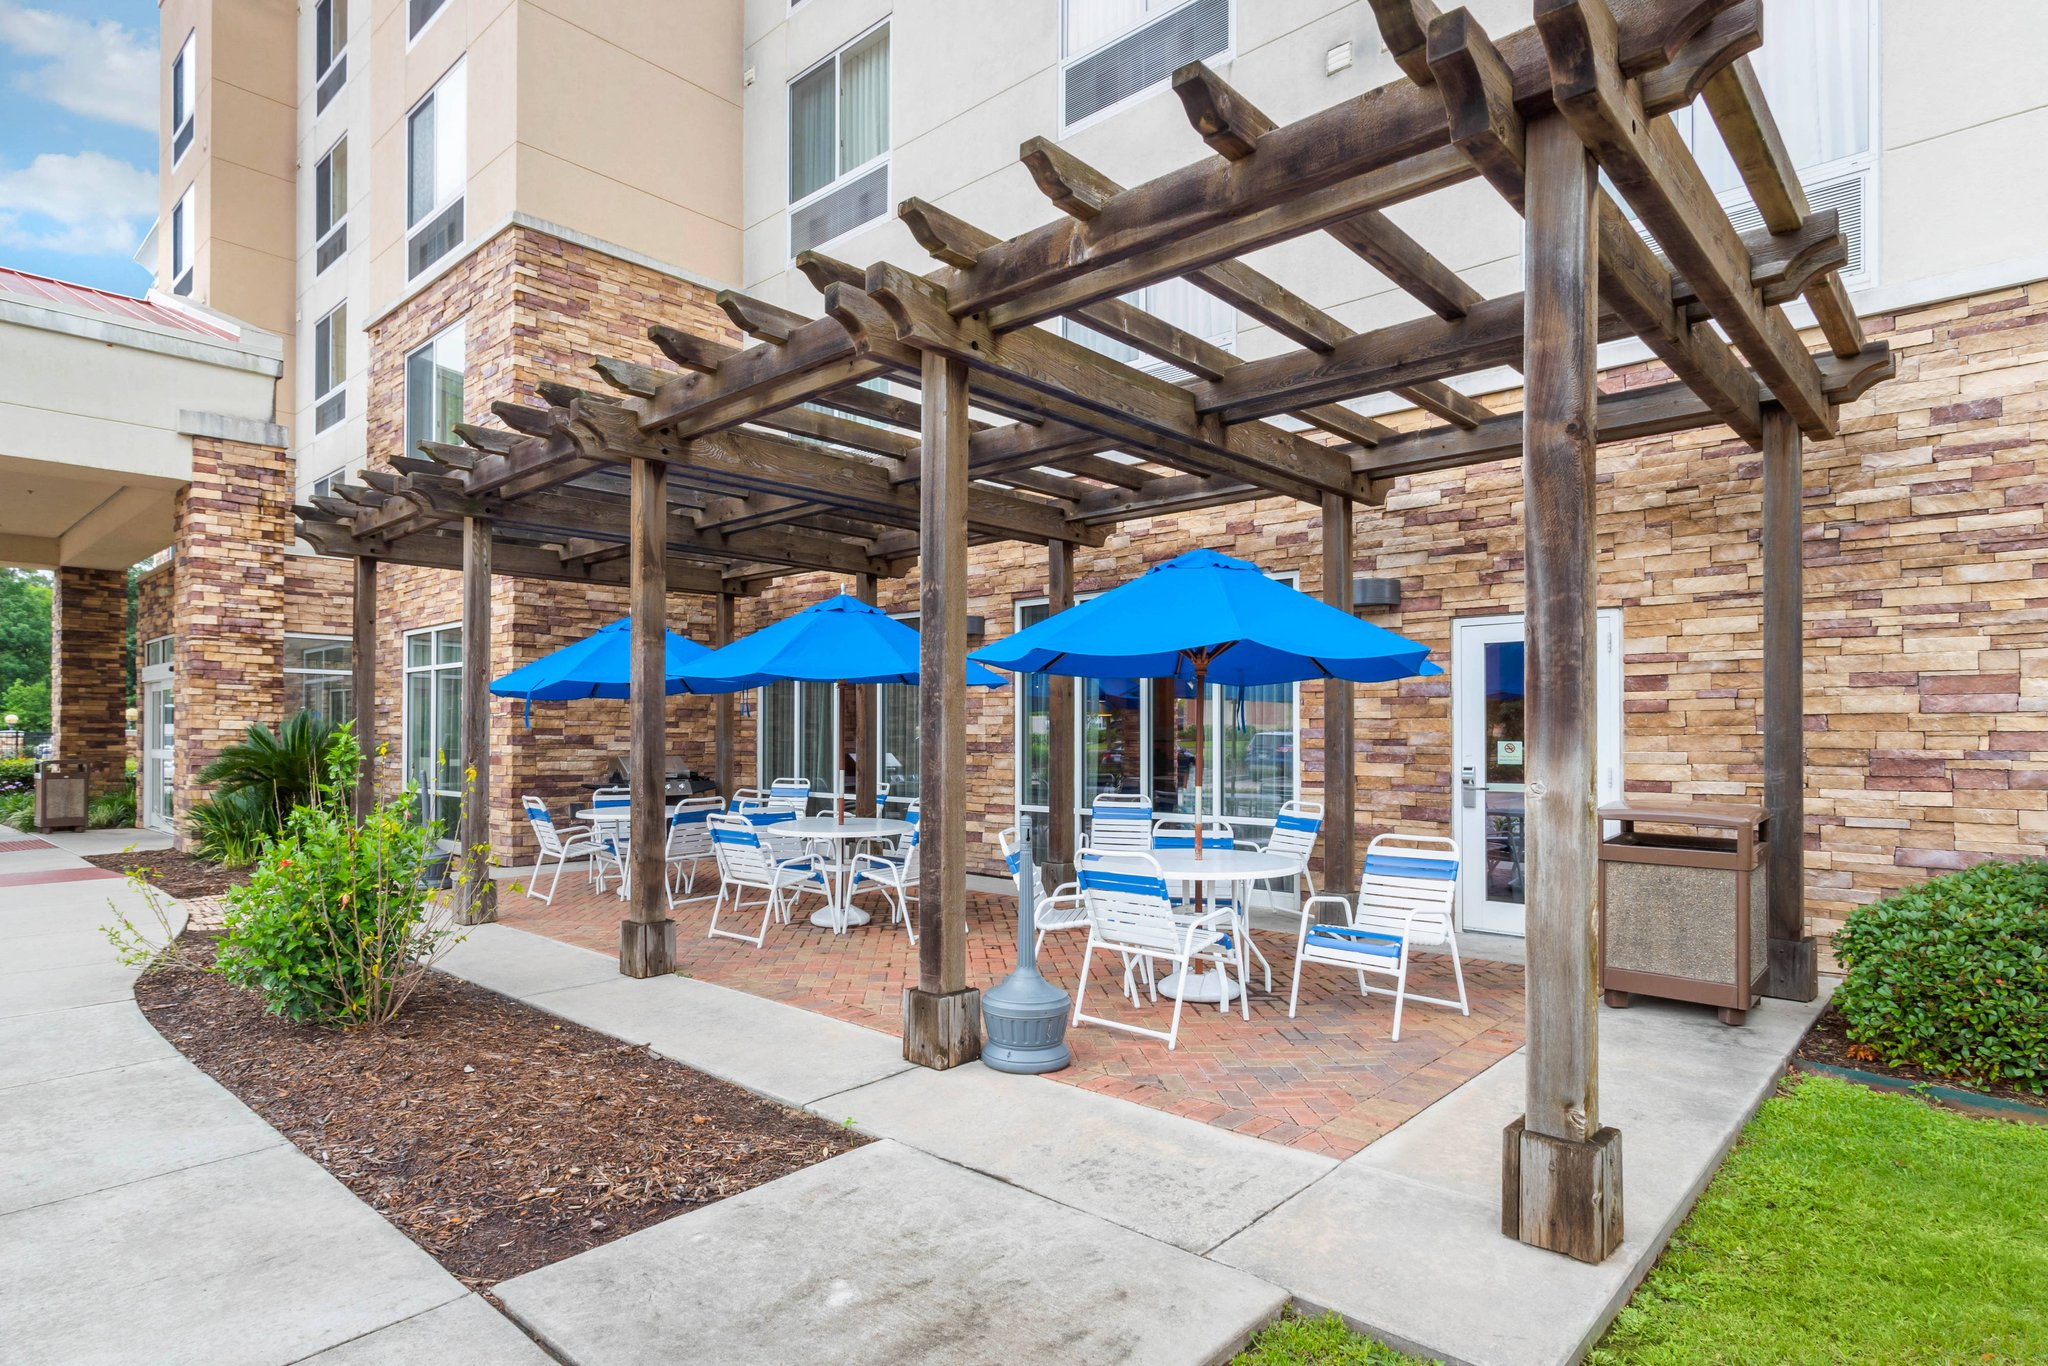 Fairfield Inn and Suites by Marriott Houston Conroe/The Woodlands